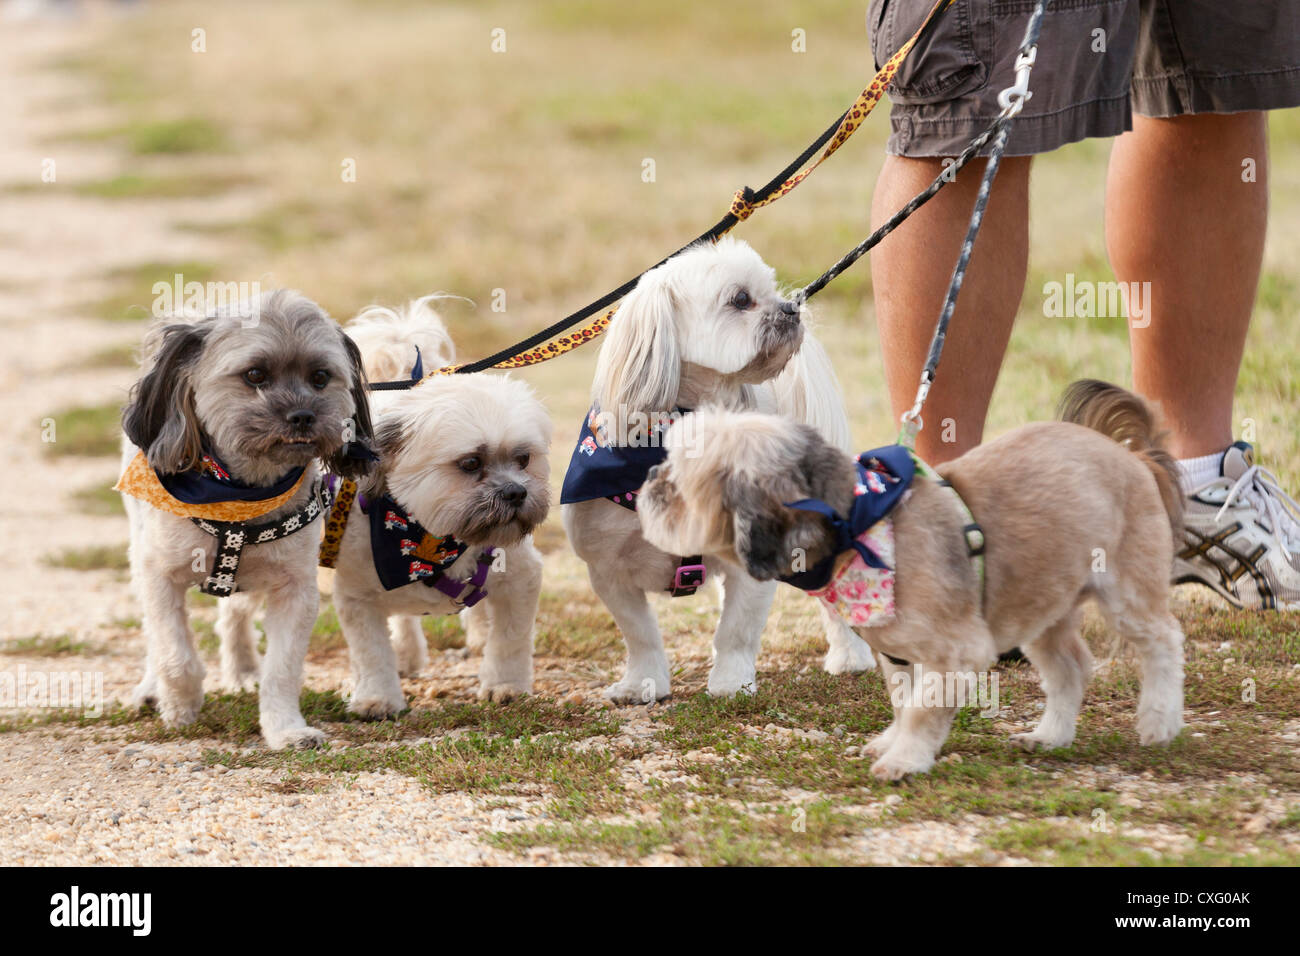 Small dogs on leash - Stock Image